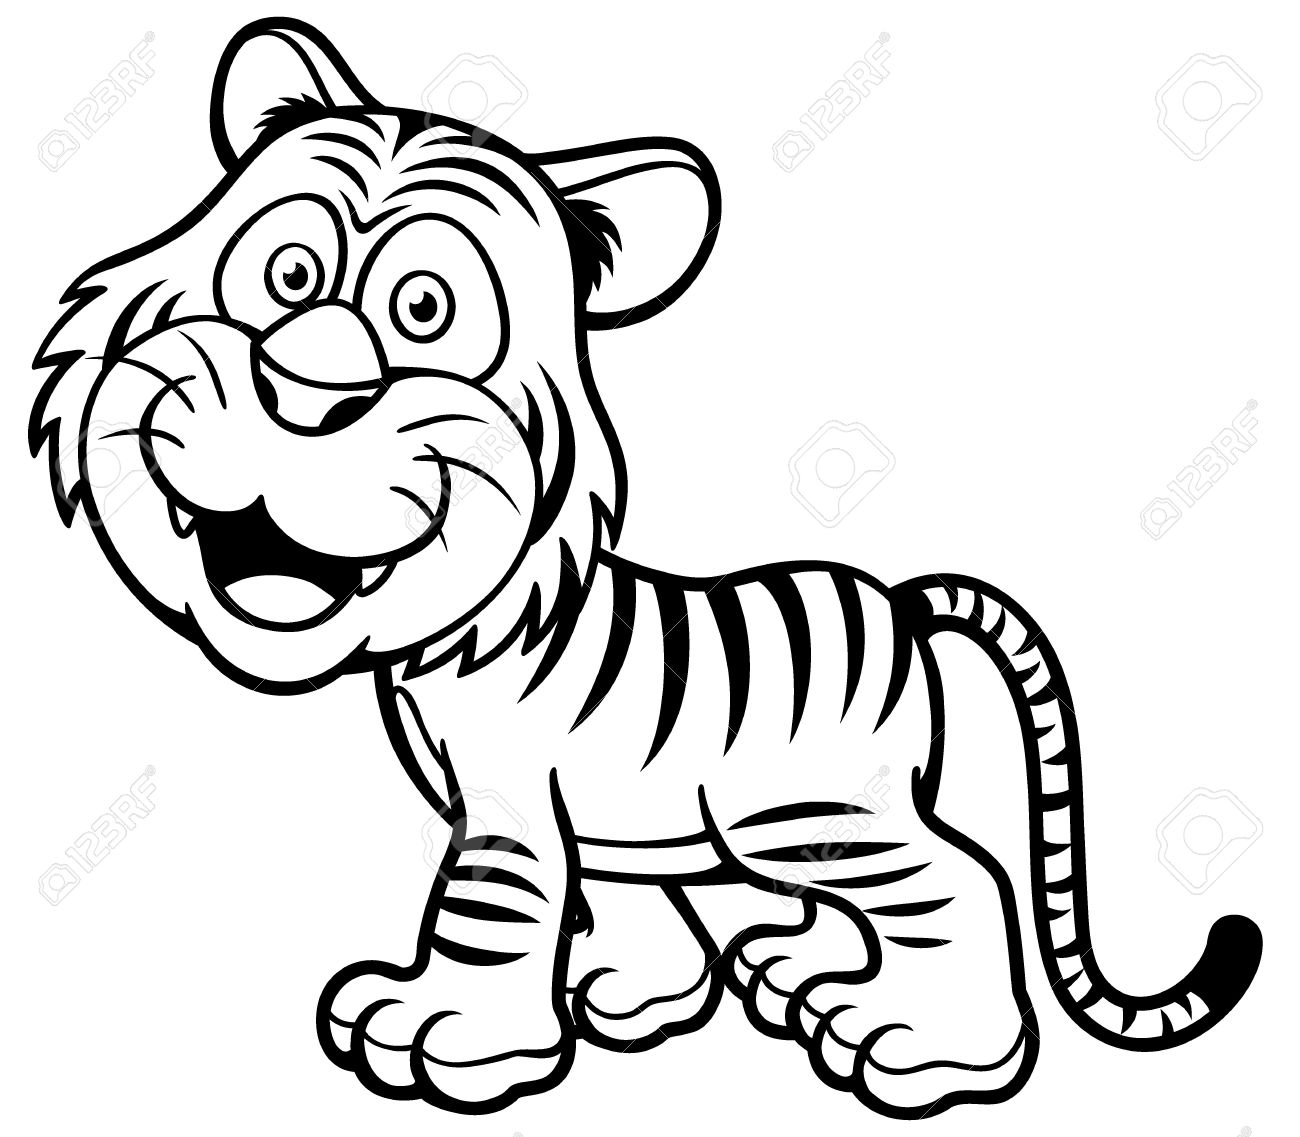 Illustration Of Tiger Cartoon Coloring Book